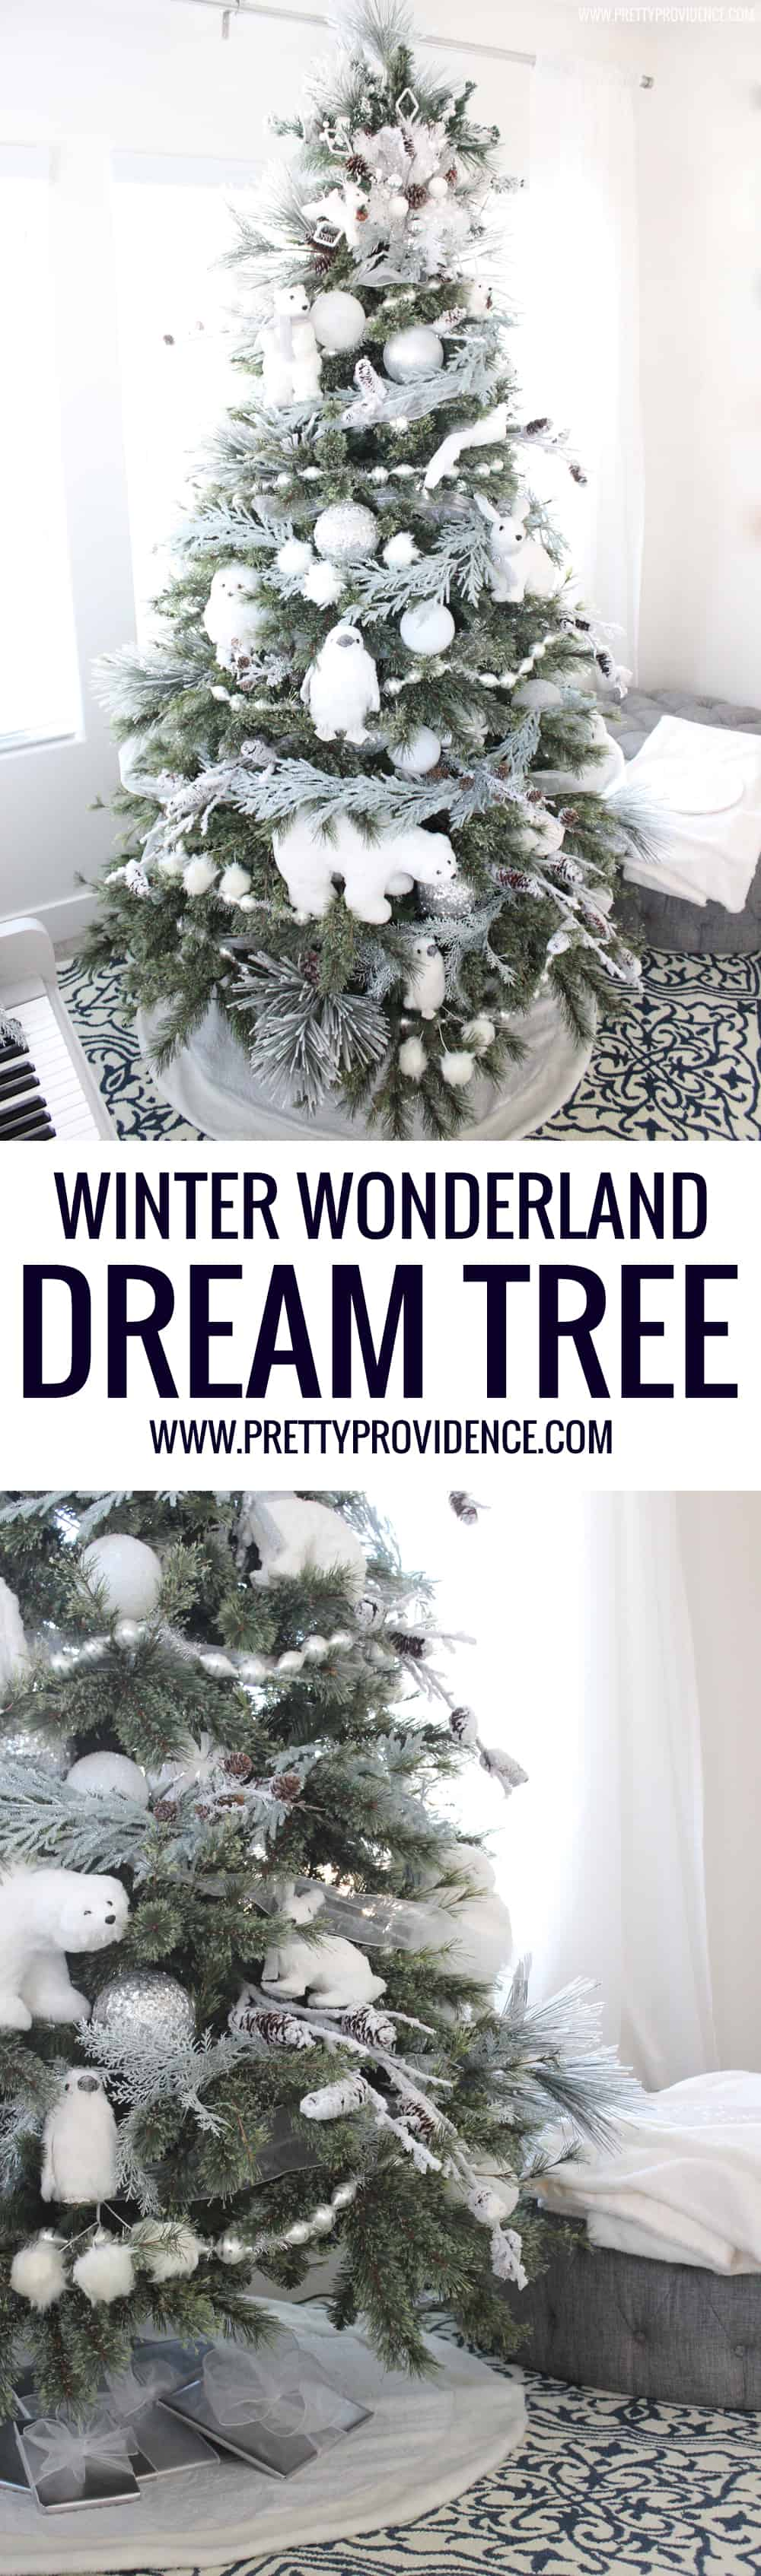 Totally in love with this winter wonderland dream tree! So fun for the kids, and still beautiful for me!